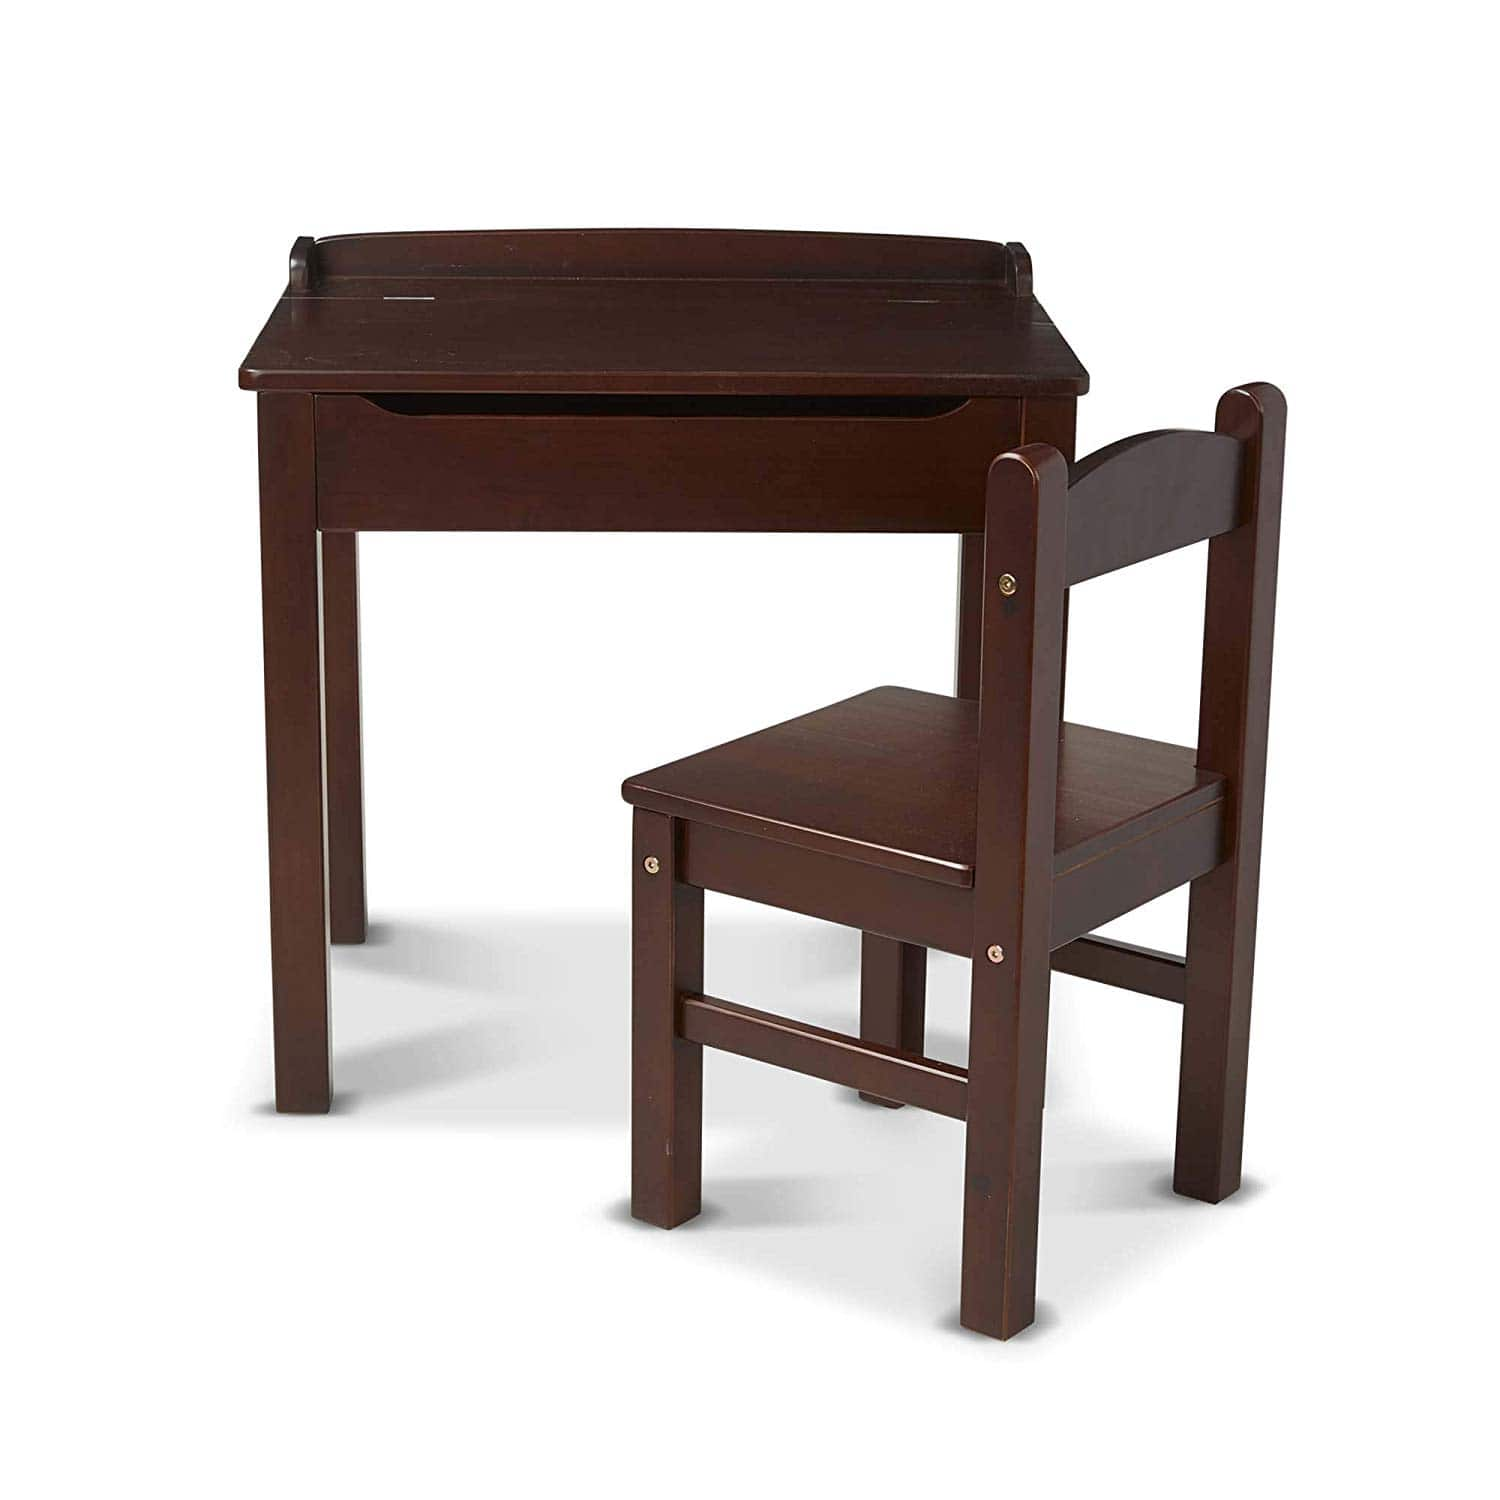 Melissa & Doug Child's Lift-Top Desk & Chair (Espresso) - Slickdeals net